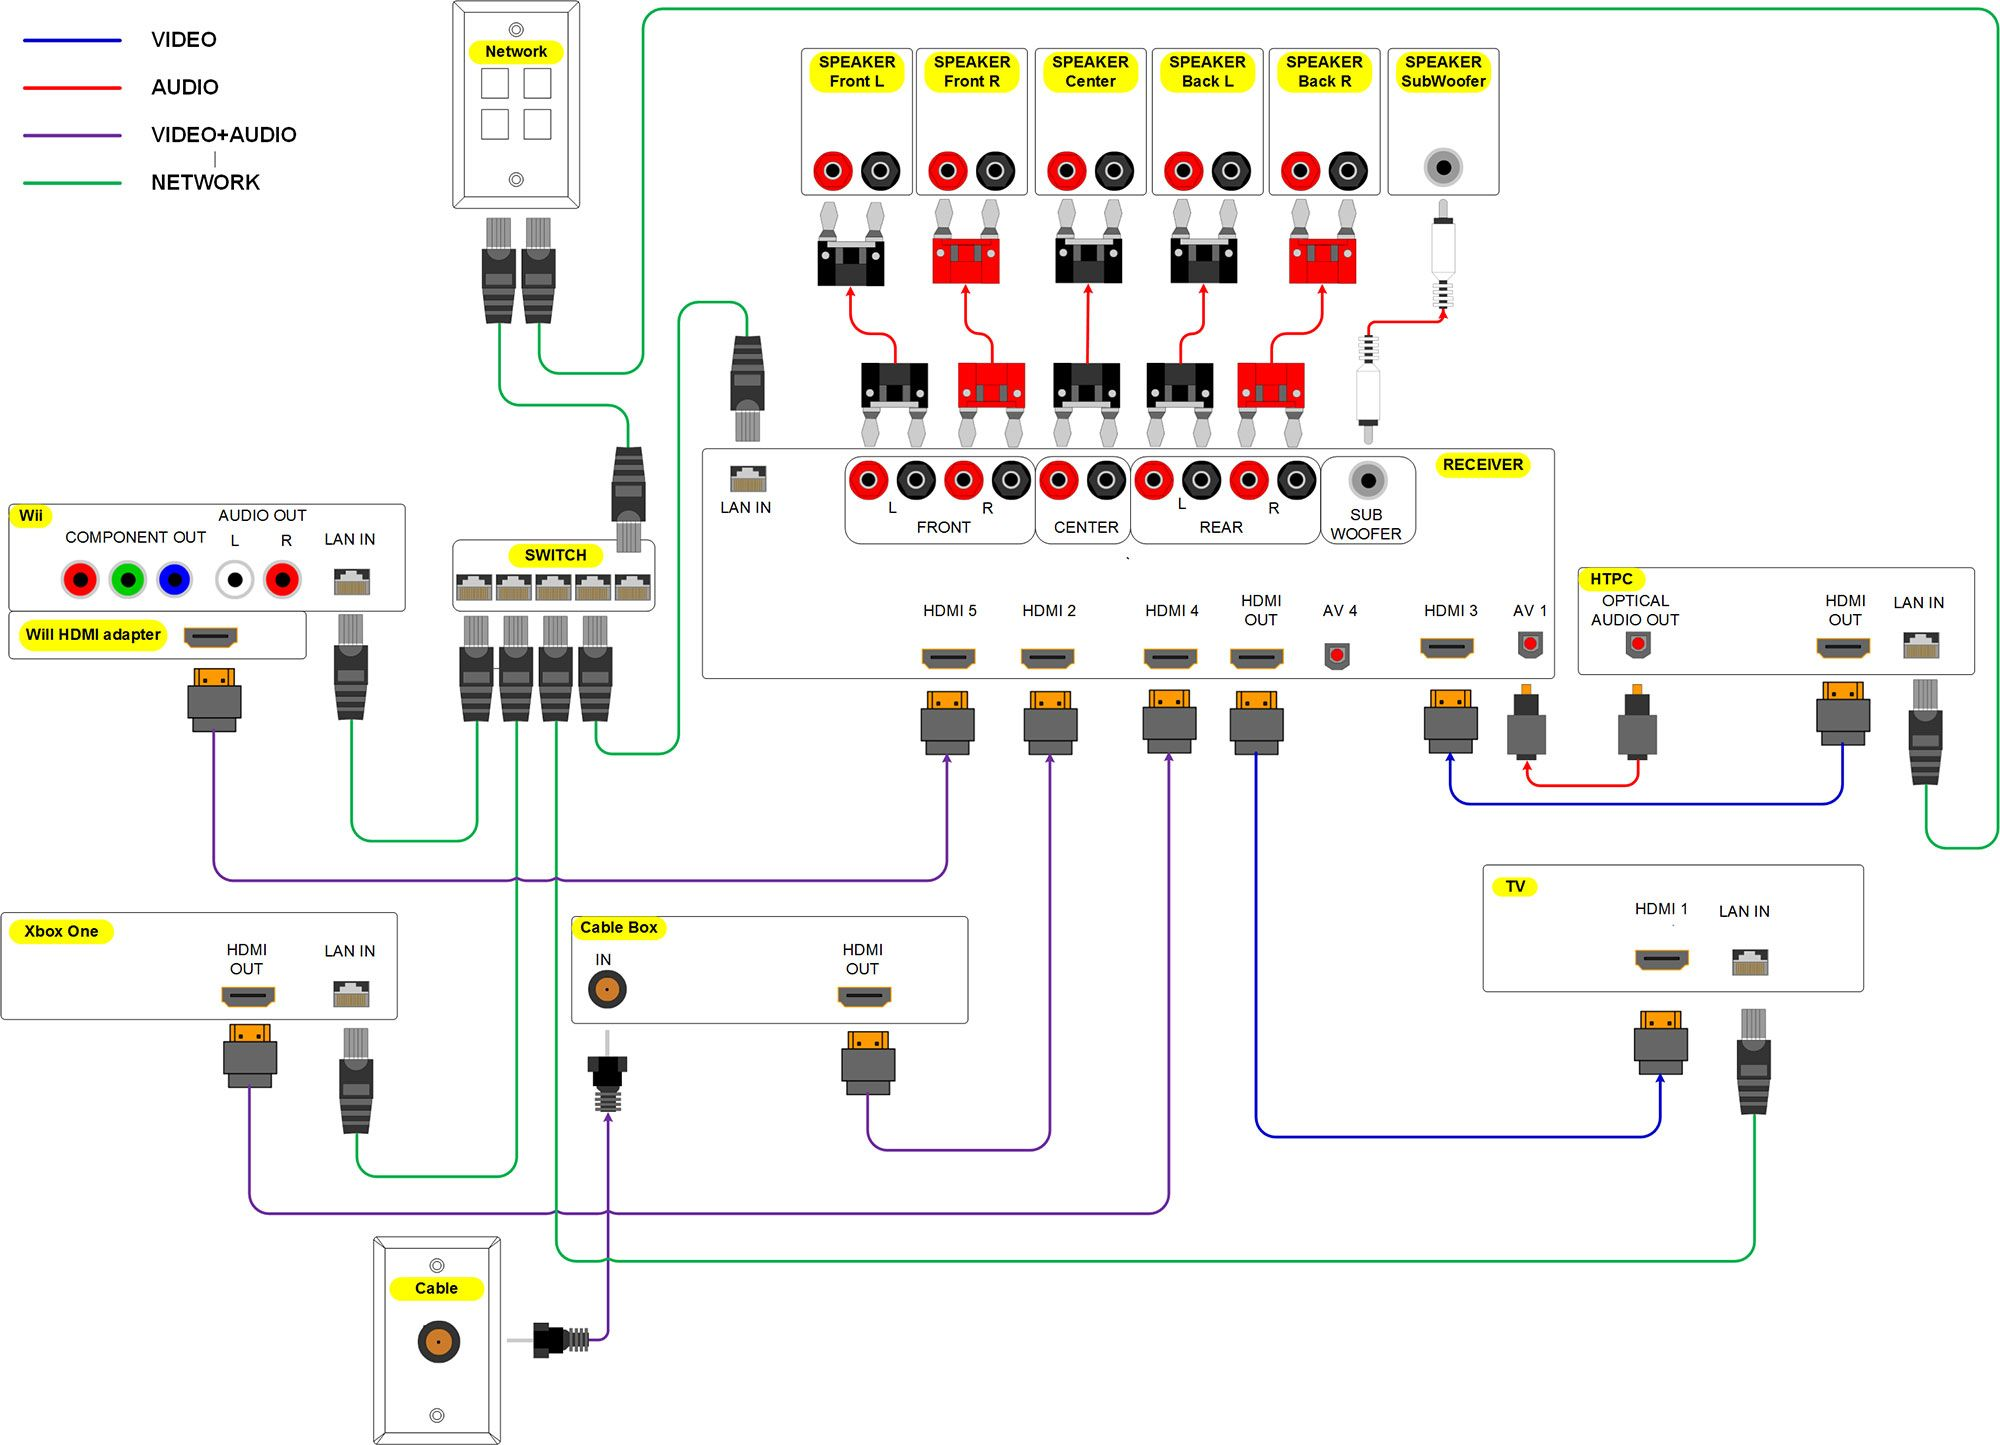 hight resolution of home theater wiring diagram click it to see the big 2000 pixel wide